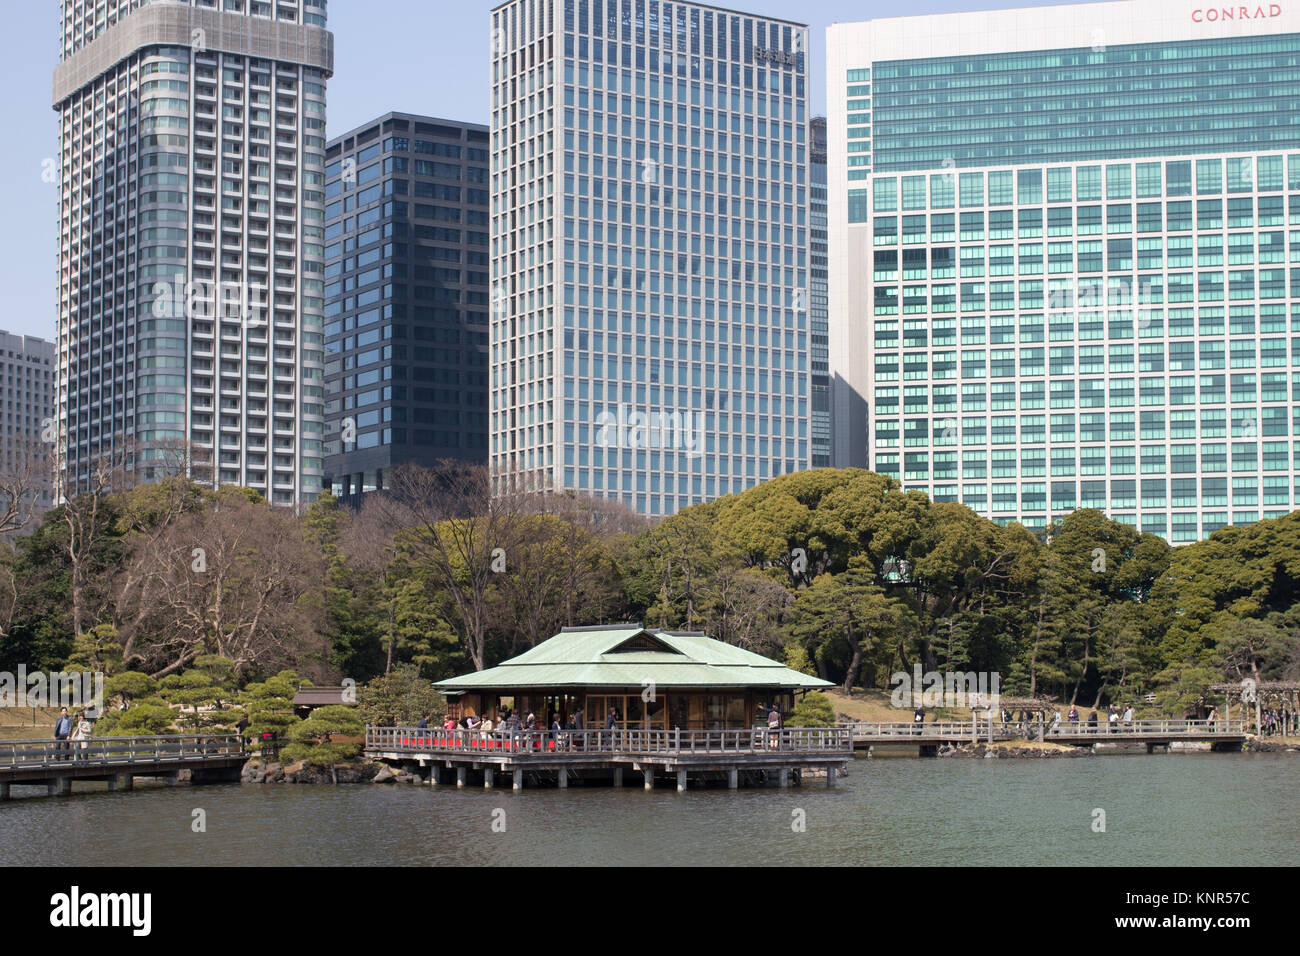 A traditional Japanese tea house in the Hamarikyu Gardens surrounded by City skyscrapers, a public park in Chūō, - Stock Image